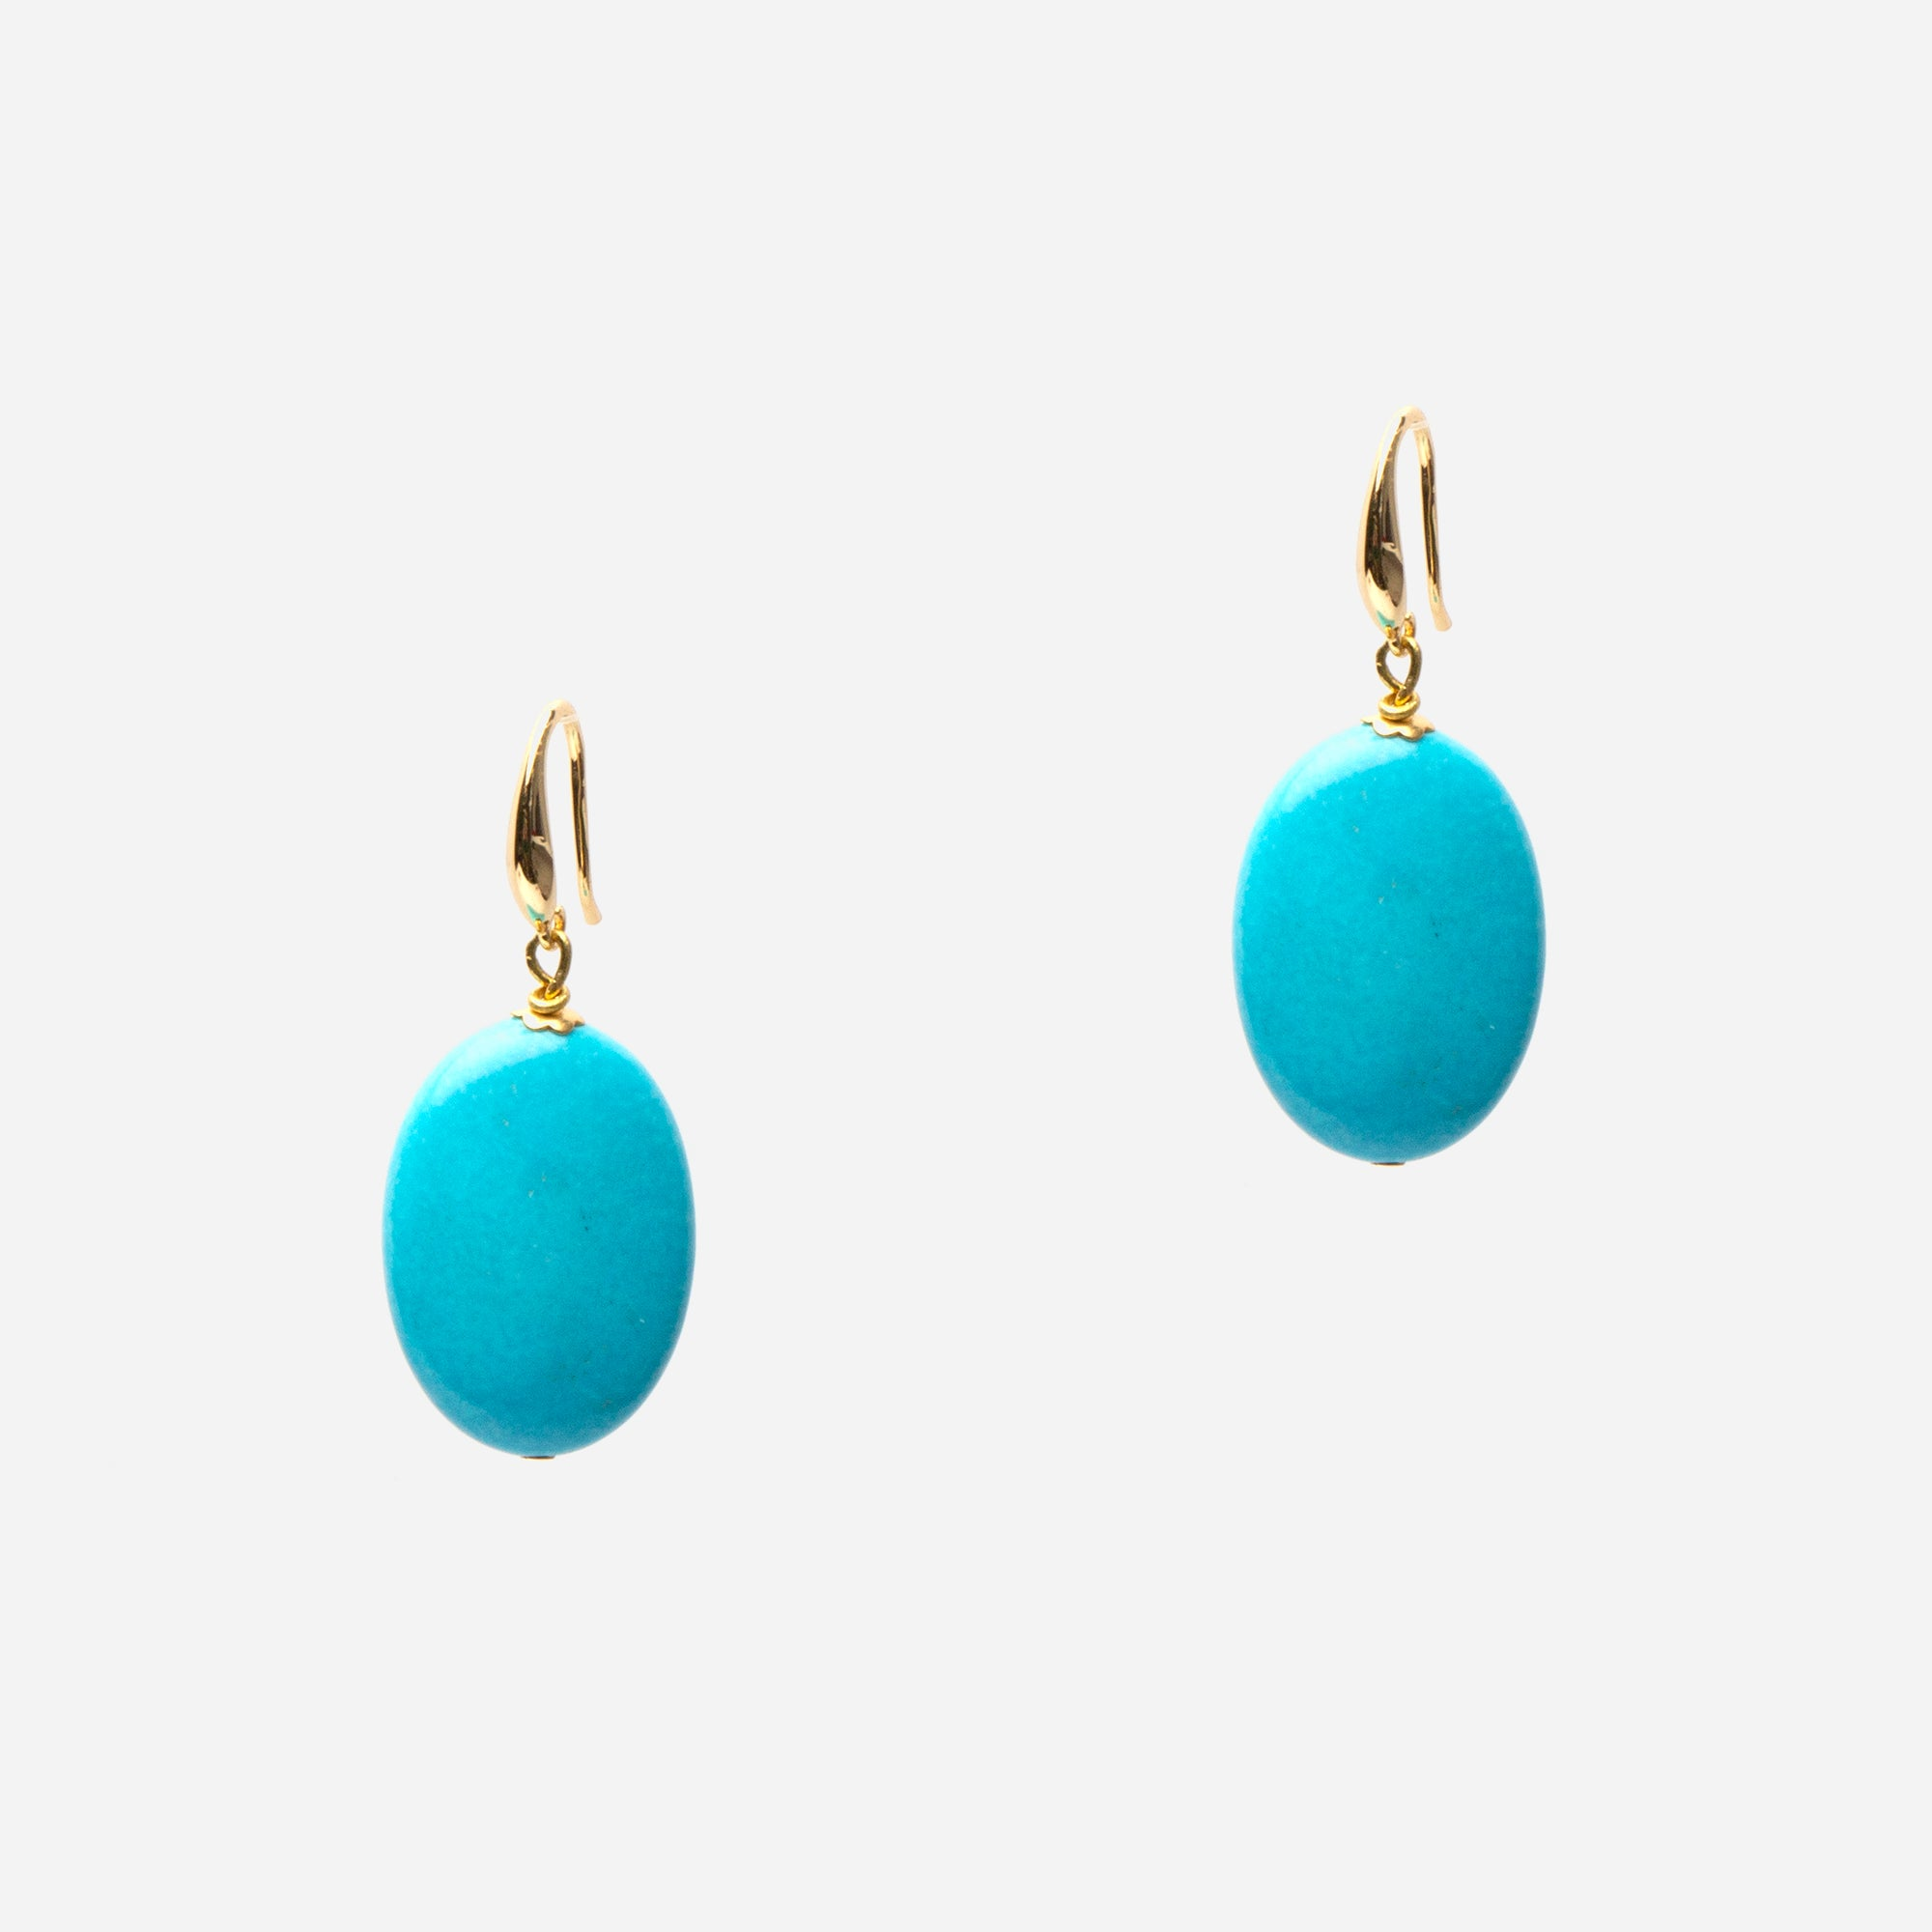 Turquoise Buoy Earrings